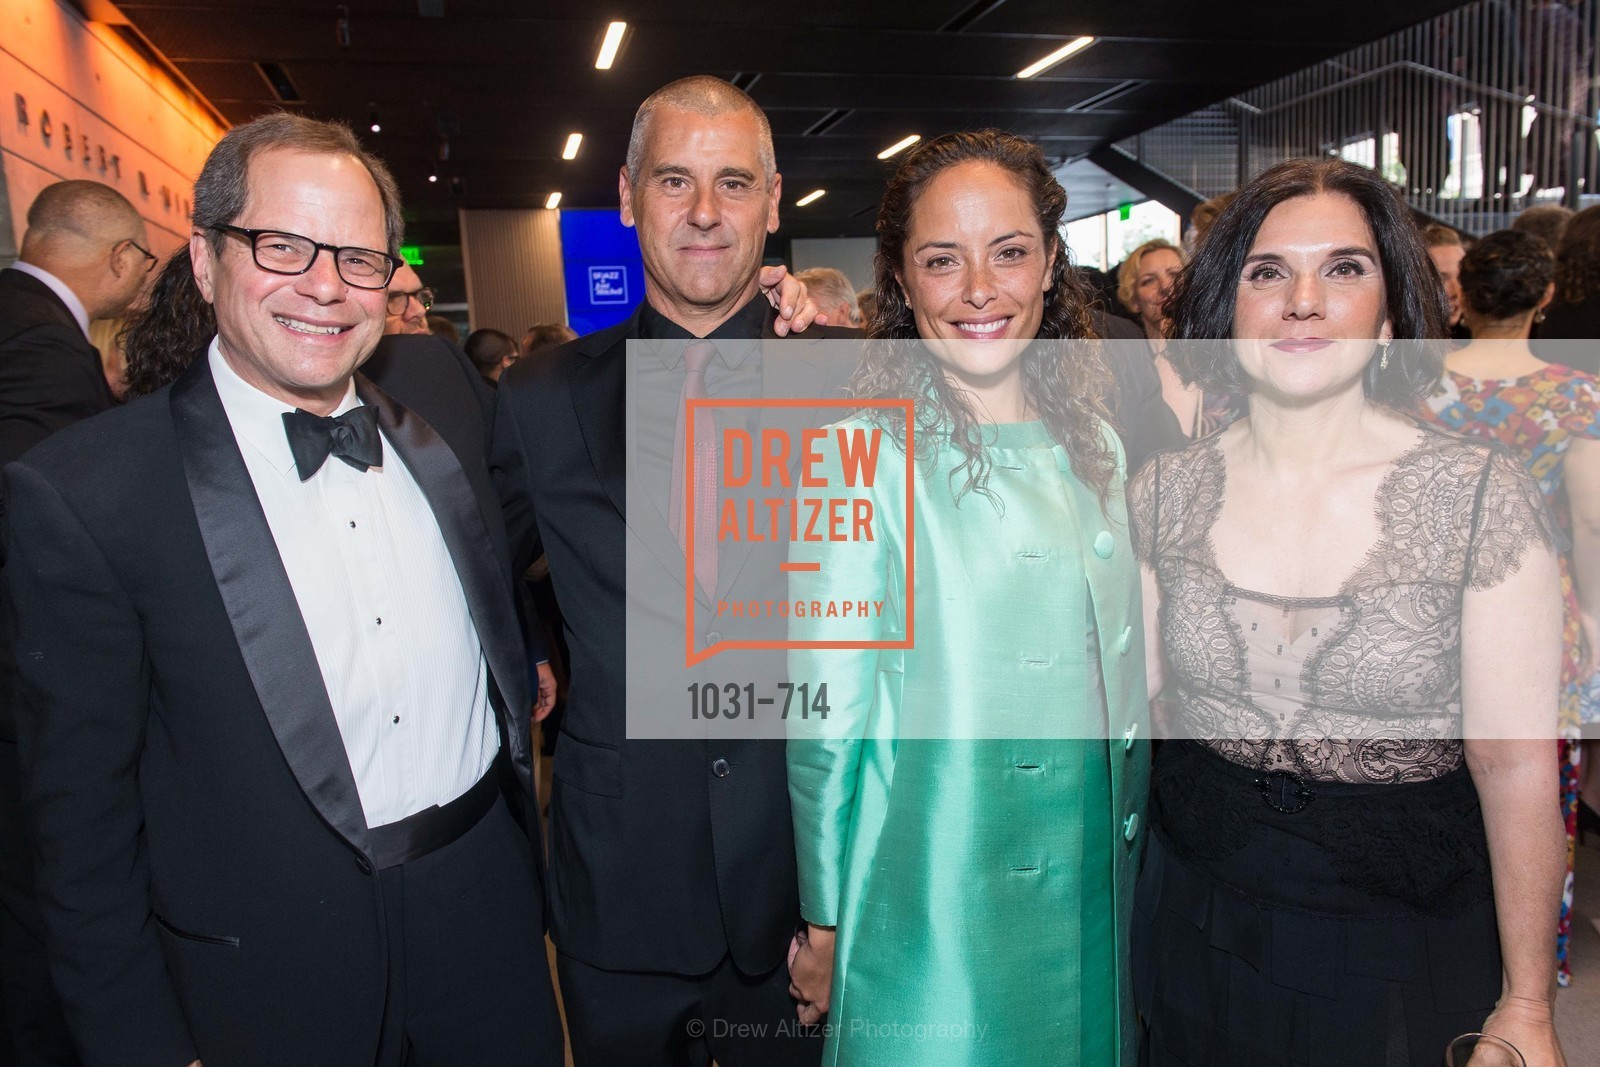 Randall Kline, Sando Birk, Elyse Bignolet, Teresa Pantaleo, SFJAZZ Gala 2015 Honors Joni Mitchell with Lifetime Achievement Award, US, May 9th, 2015,Drew Altizer, Drew Altizer Photography, full-service agency, private events, San Francisco photographer, photographer california